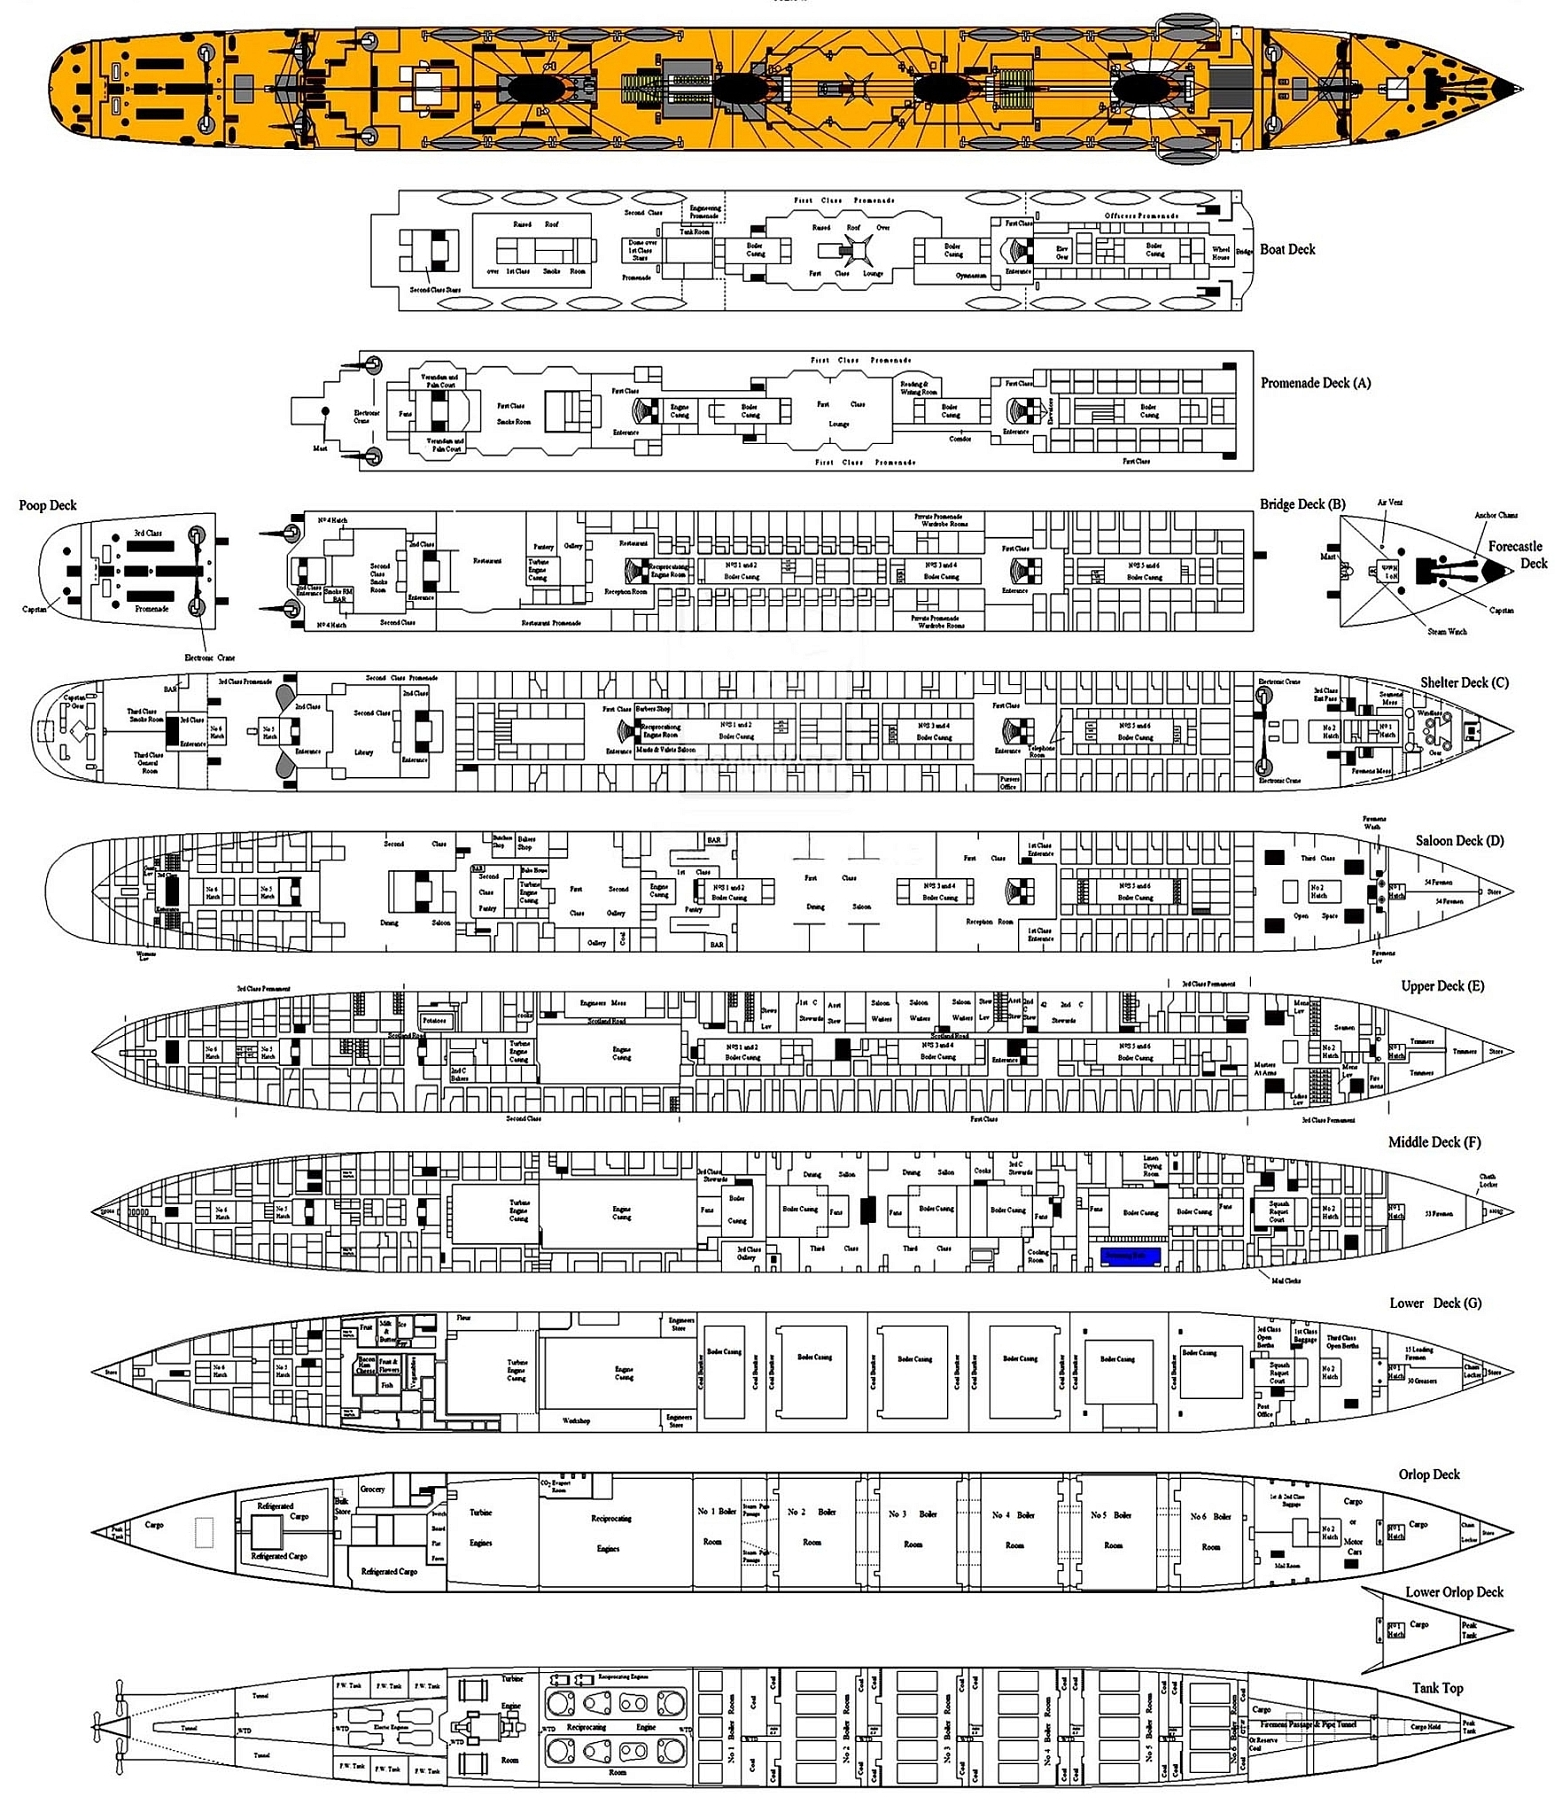 Deck Floor Plan Rms Titanic Page Three Her Full Deck Plan